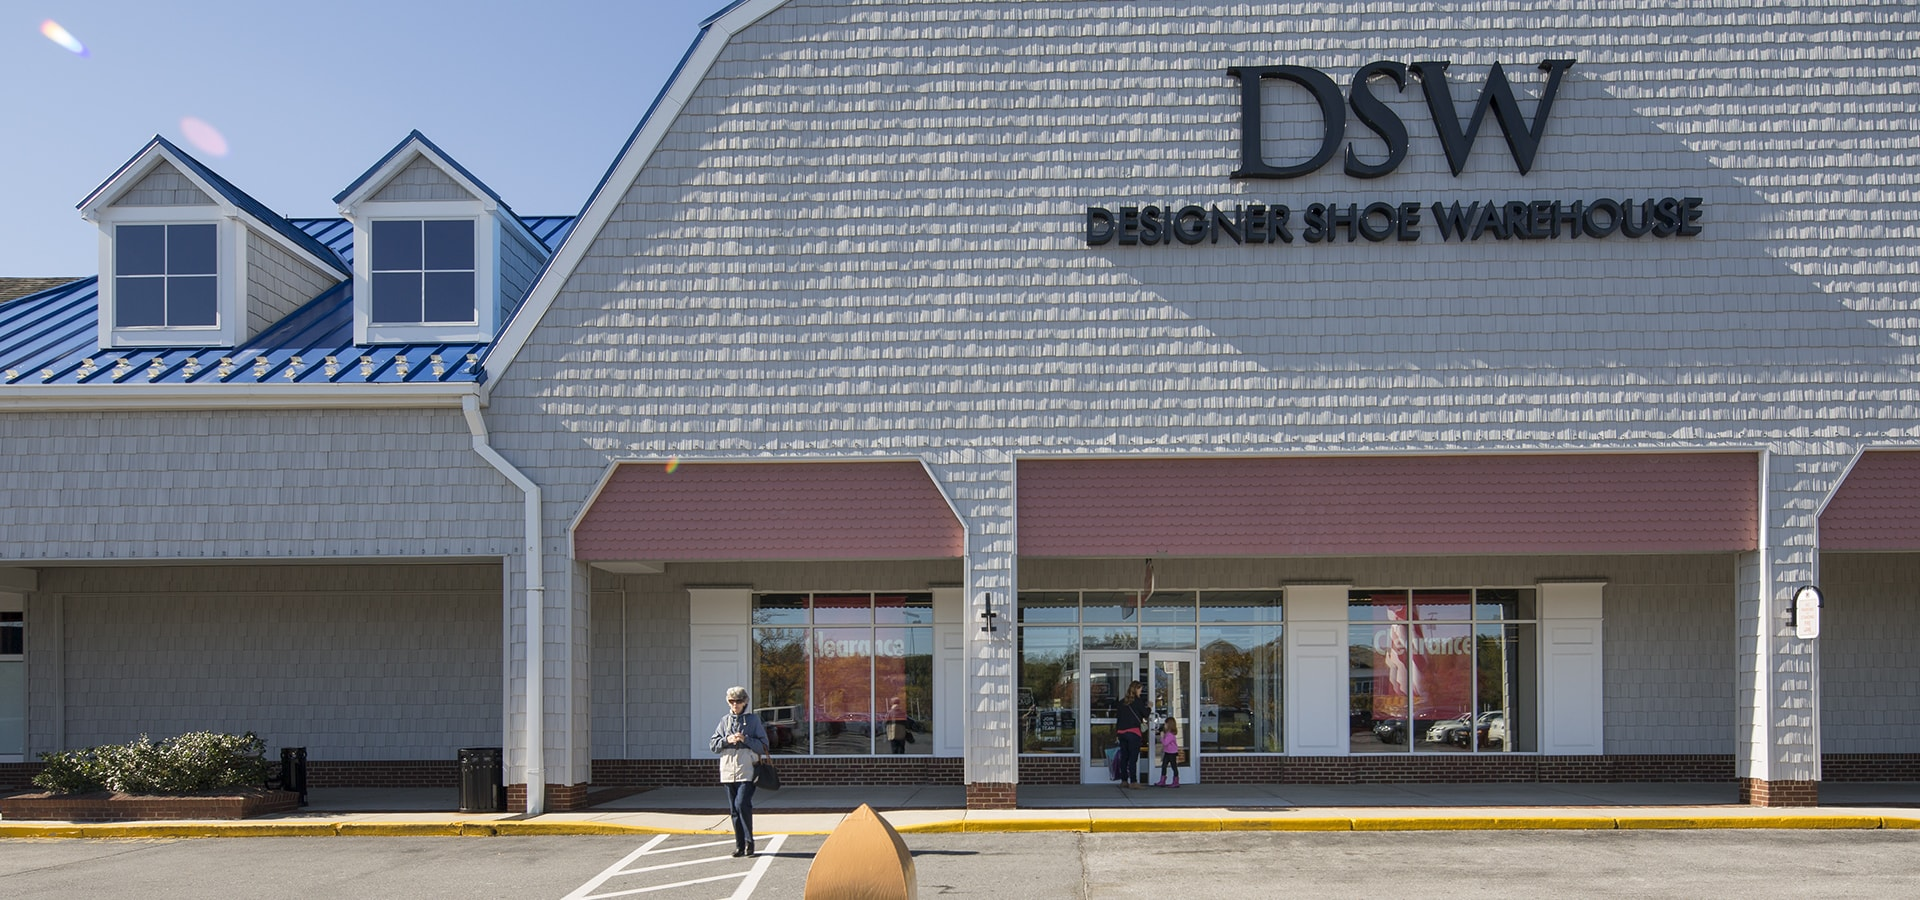 DSW | Shoe Stores in Annapolis, MD | Annapolis Harbour Center